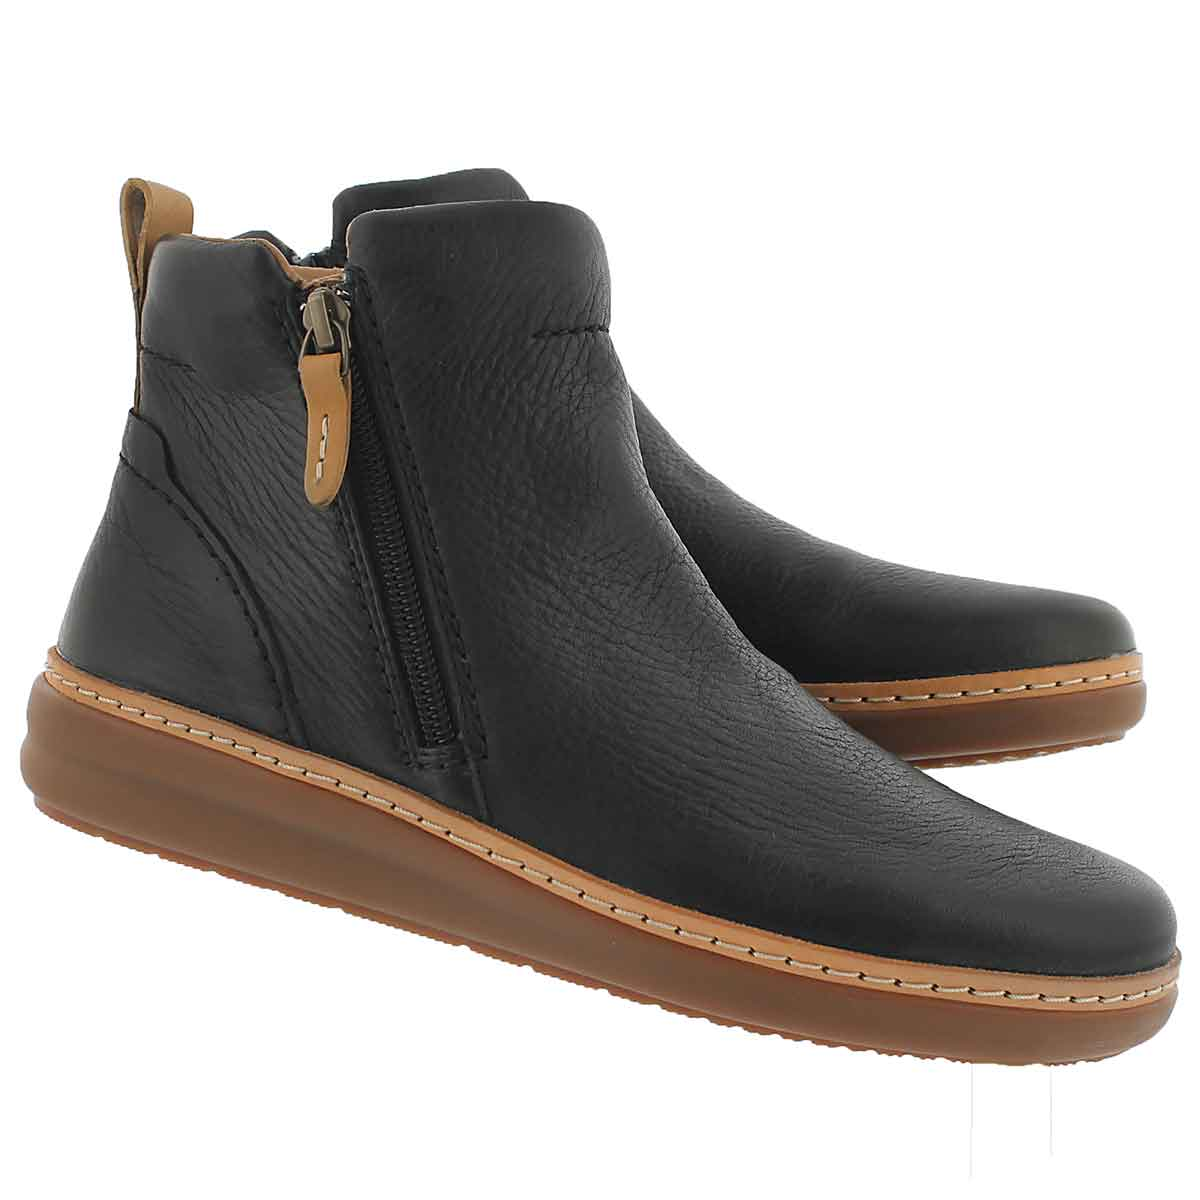 Lds Amberlee Rosi blk ankle boot